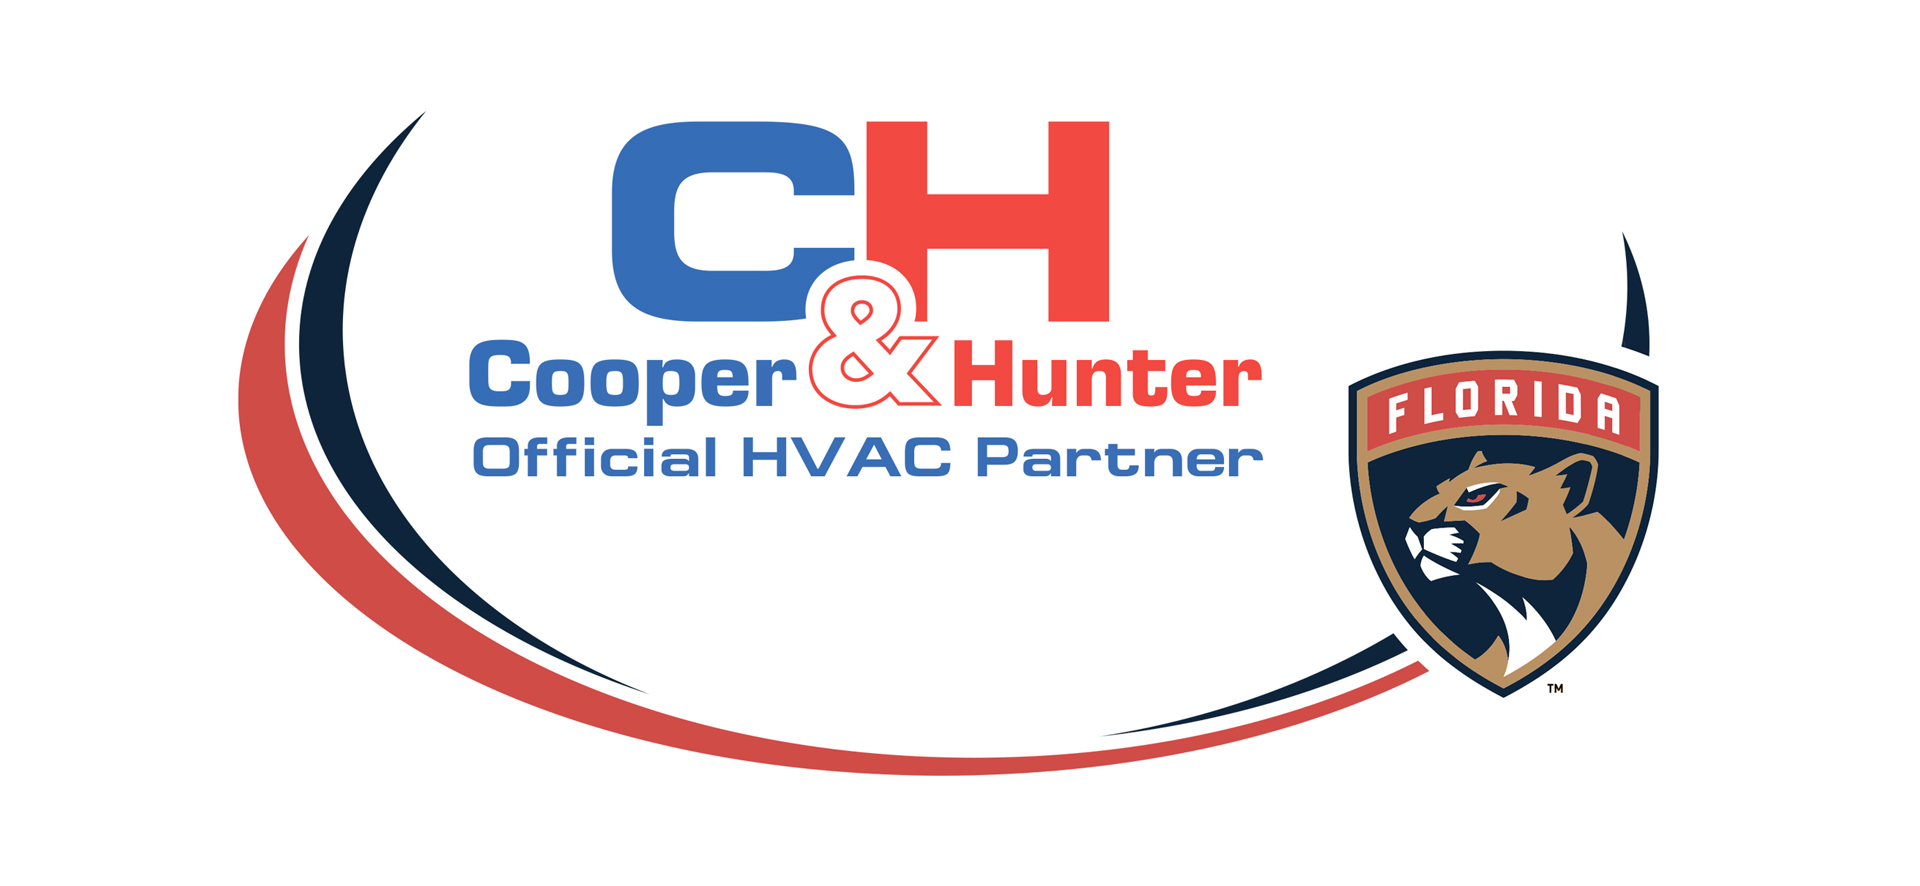 COOPER&HUNTER BECOMES AN OFFICIAL PARTNER OF THE FLORIDA PANTHERS